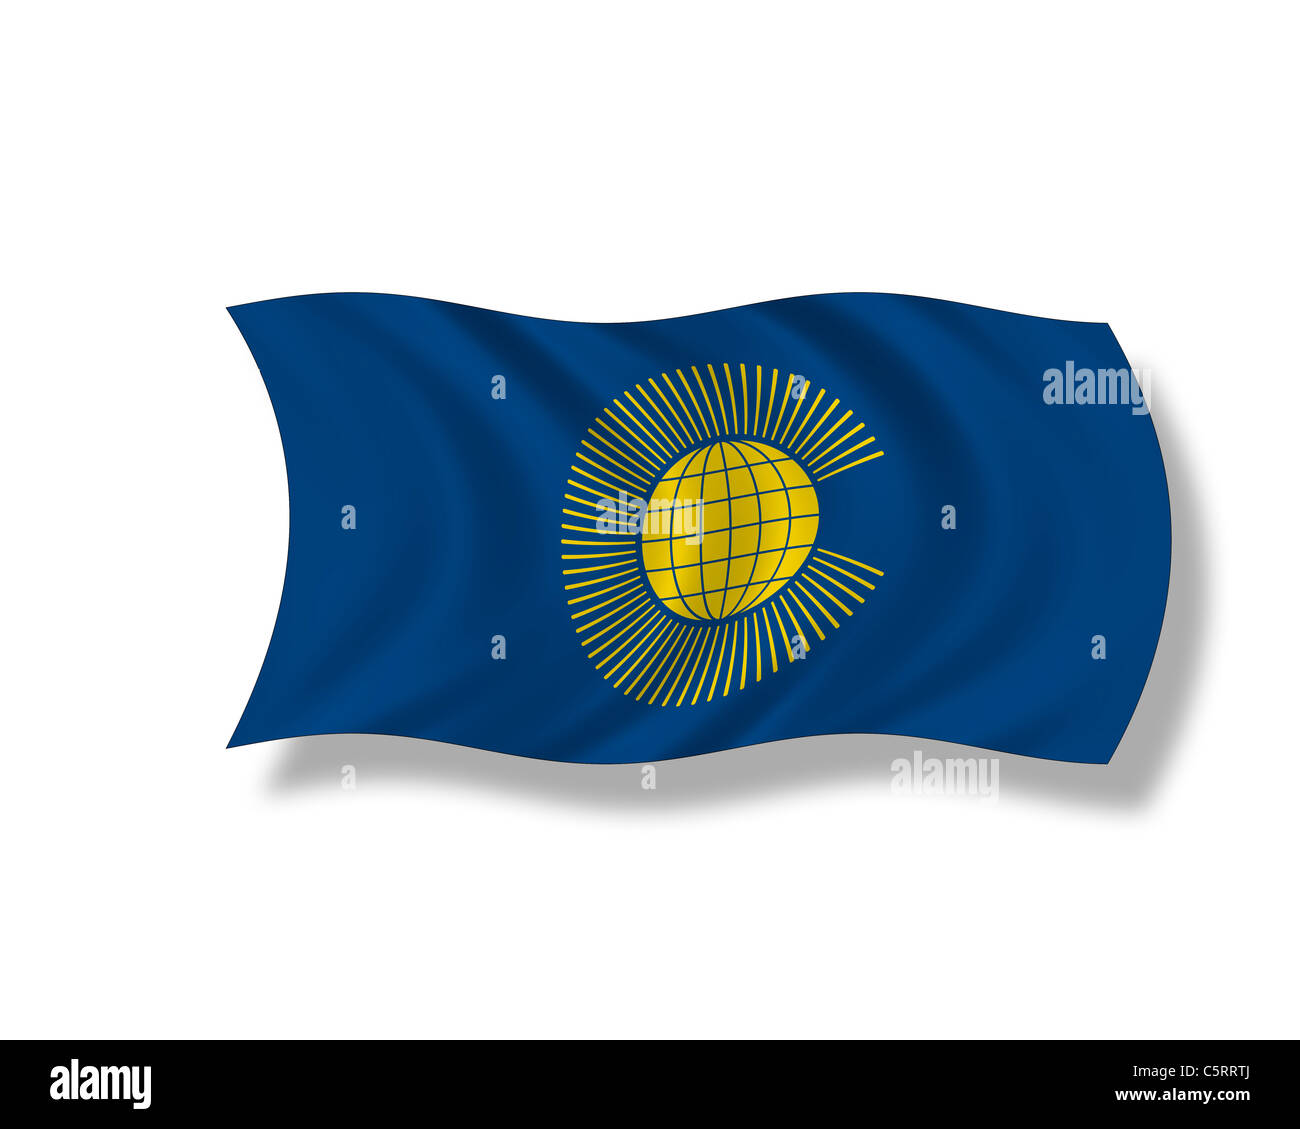 Illustration, Flag of the Commonwealth of Nations - Stock Image